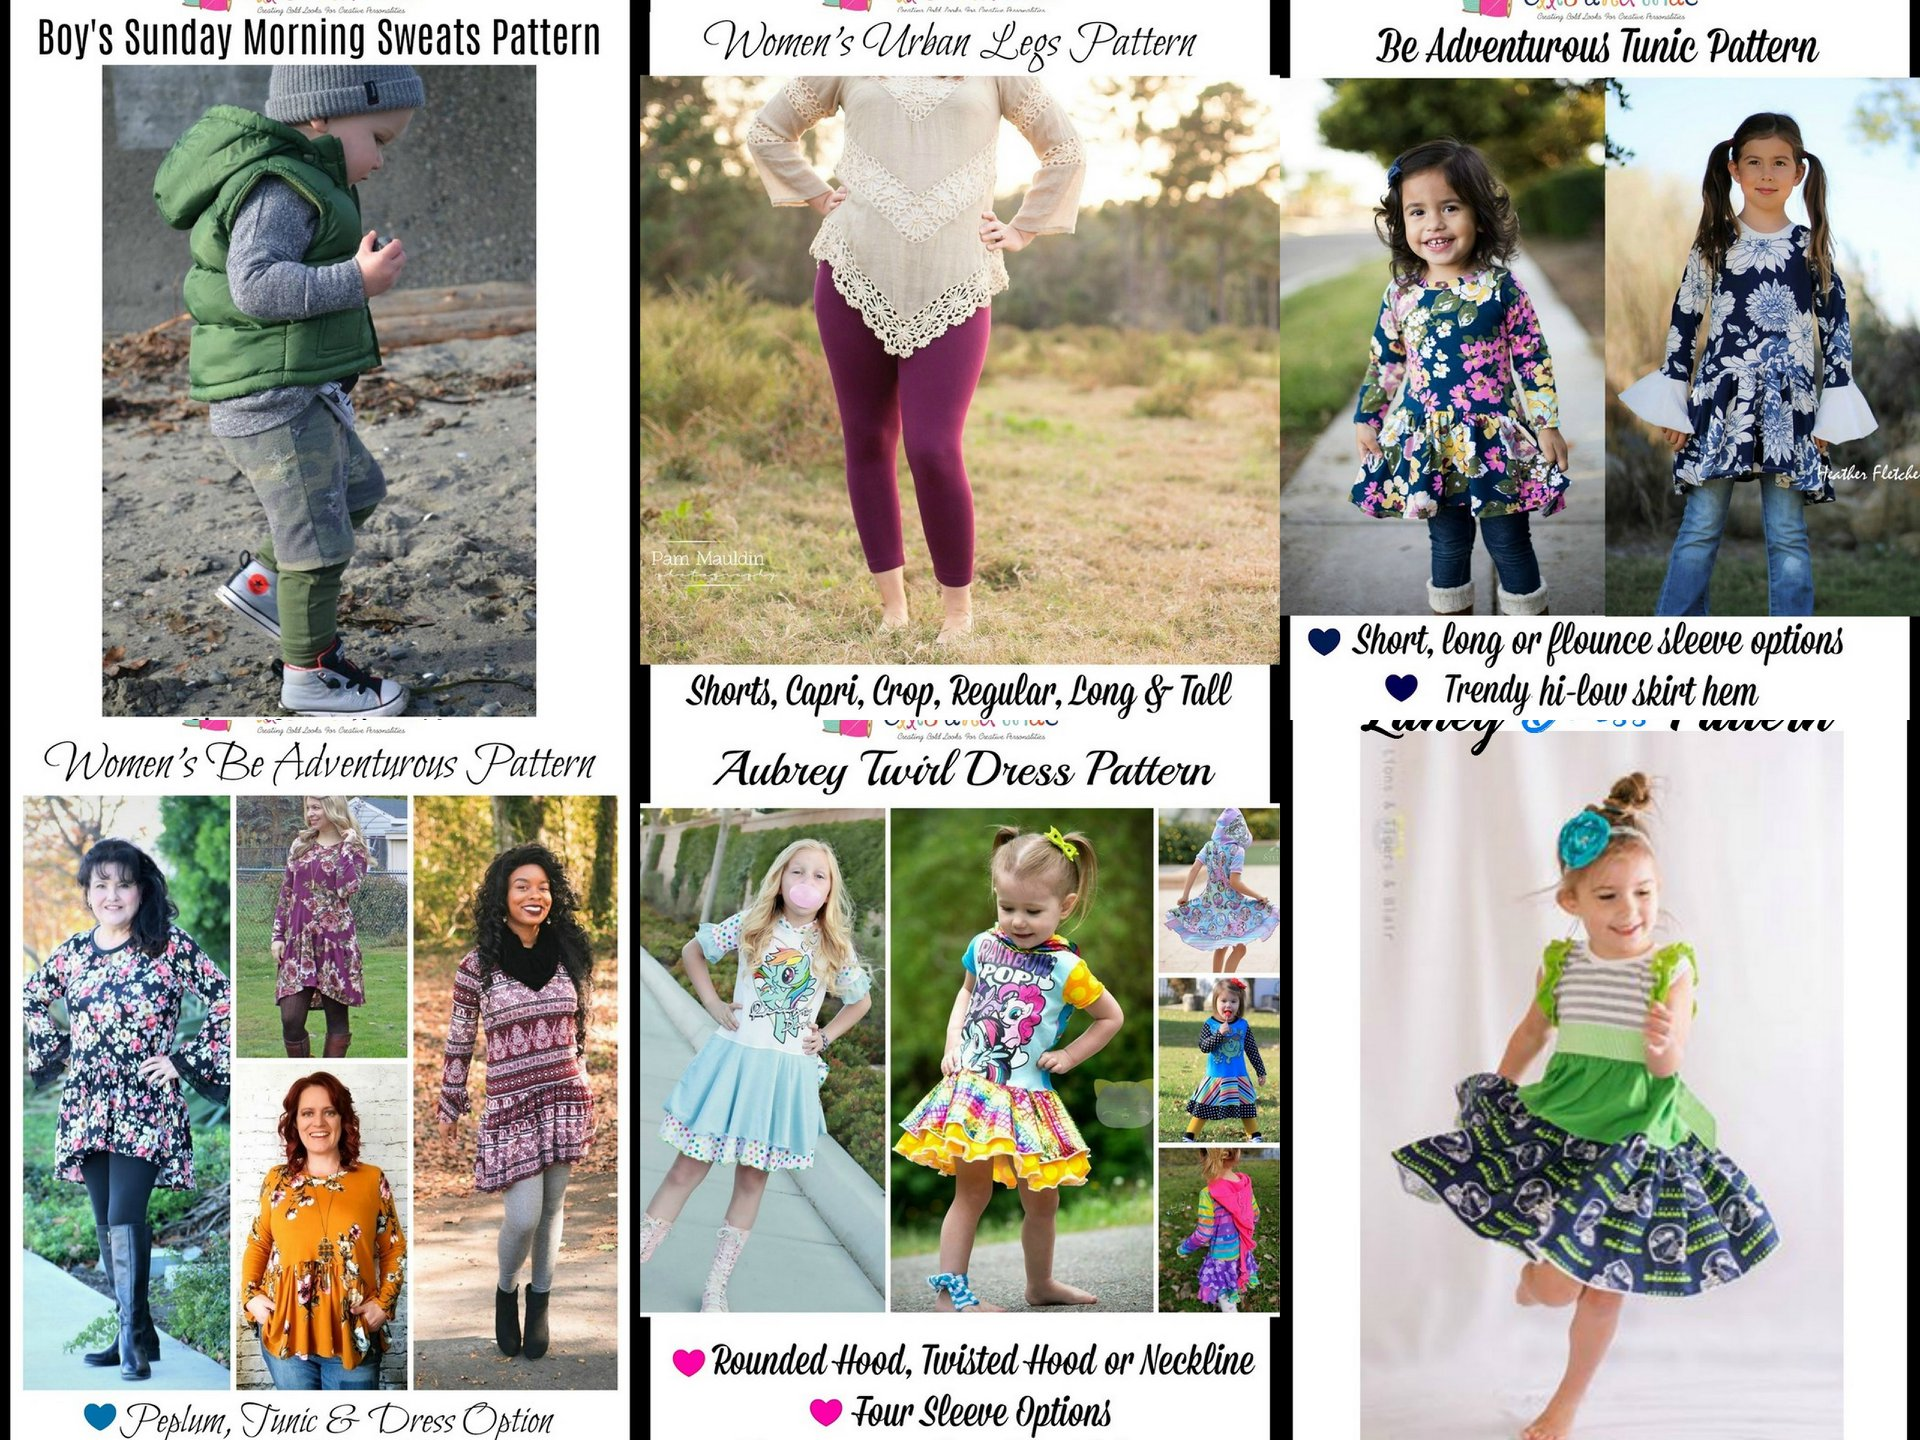 wacky wednesday $1 Sewing Patterns Februrary 6 2018